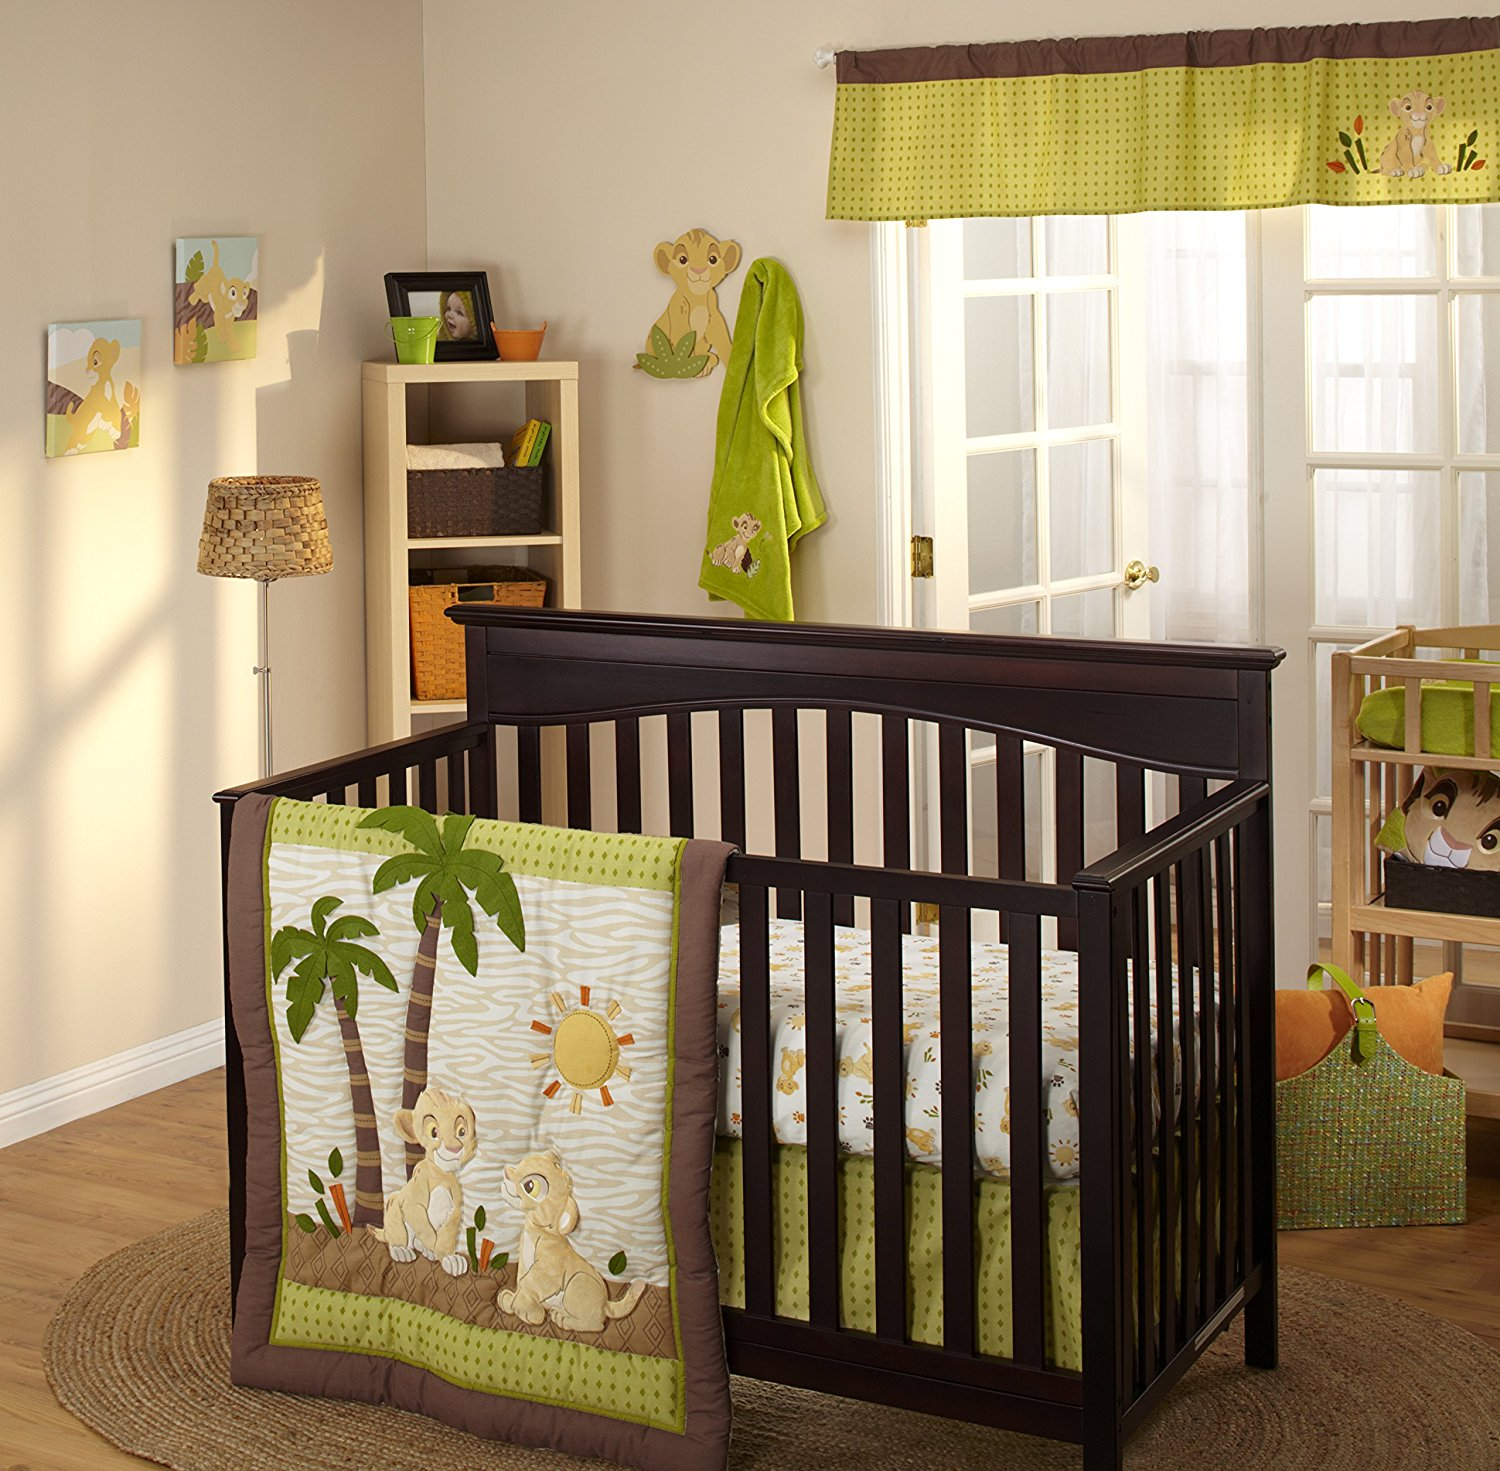 Lion King Nursery | Lion King Nursery Set | Batman Crib Set